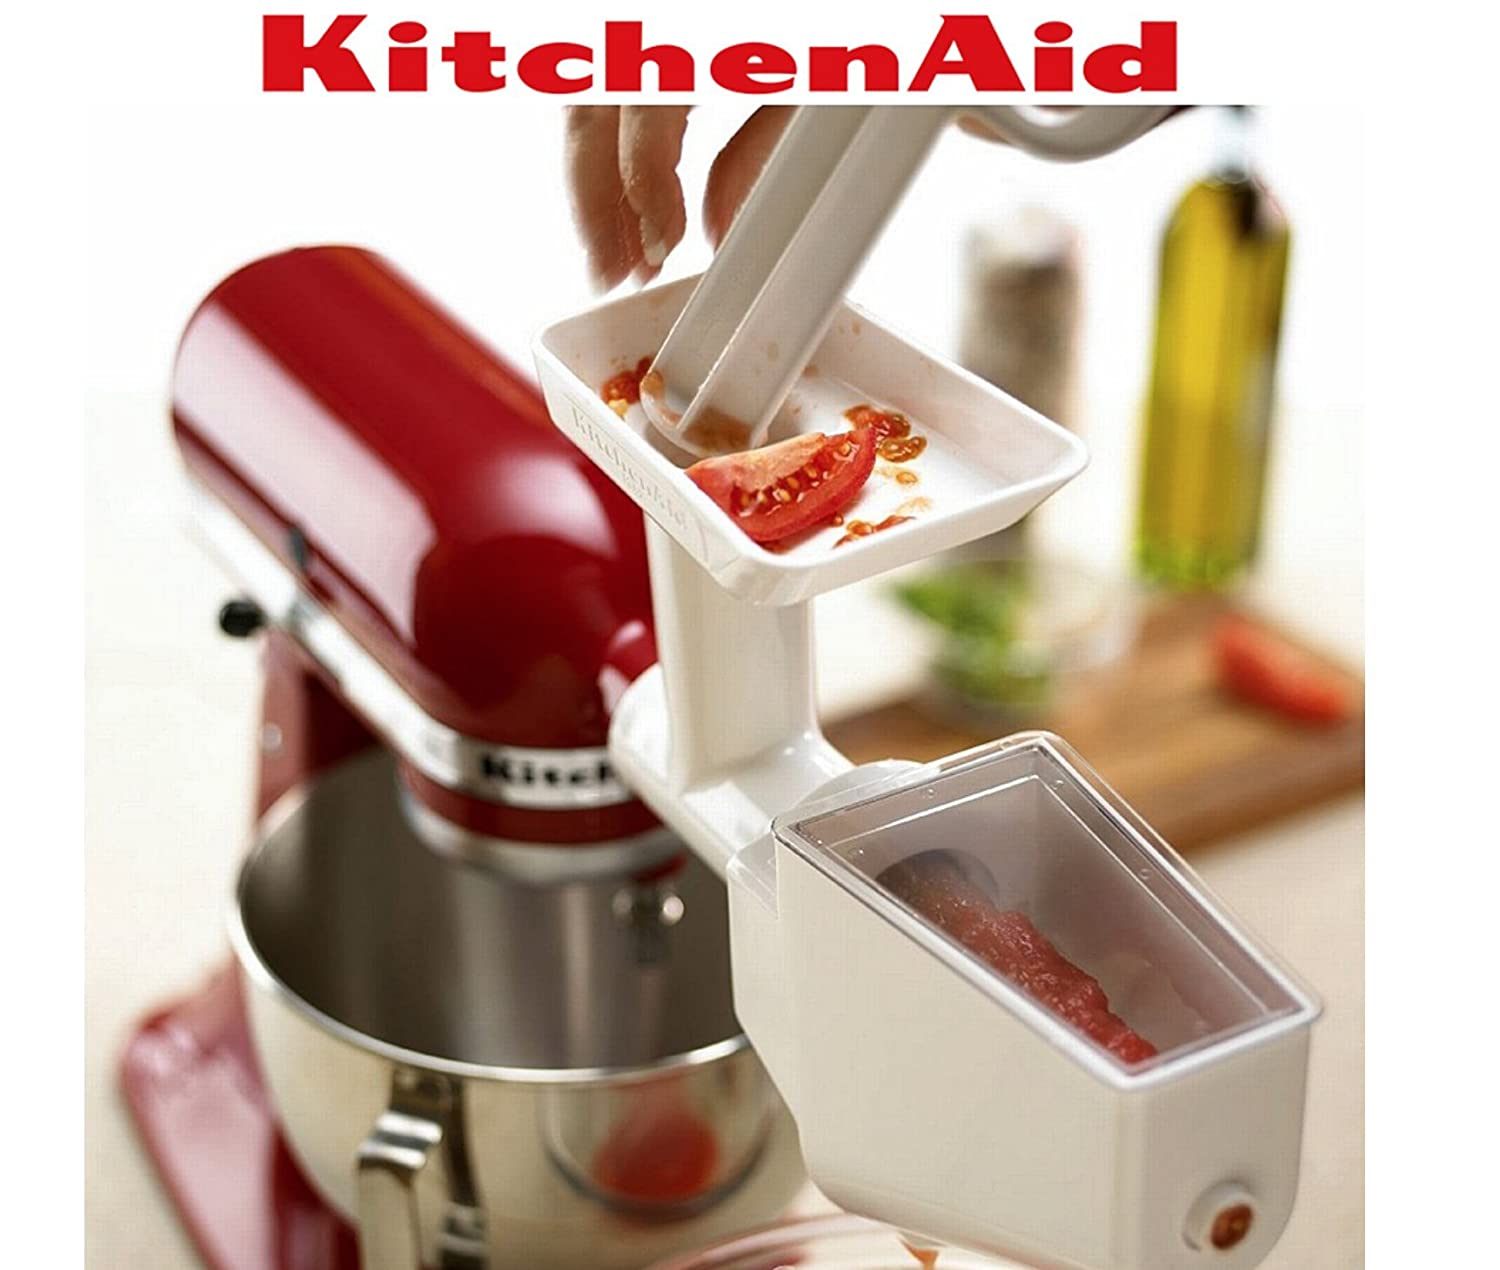 for mixtures from need attachment including taylor in kitchenaid everything this grinder best hamburgers make aid different attachments your with onion cheese beef house can to ground you the kitchen